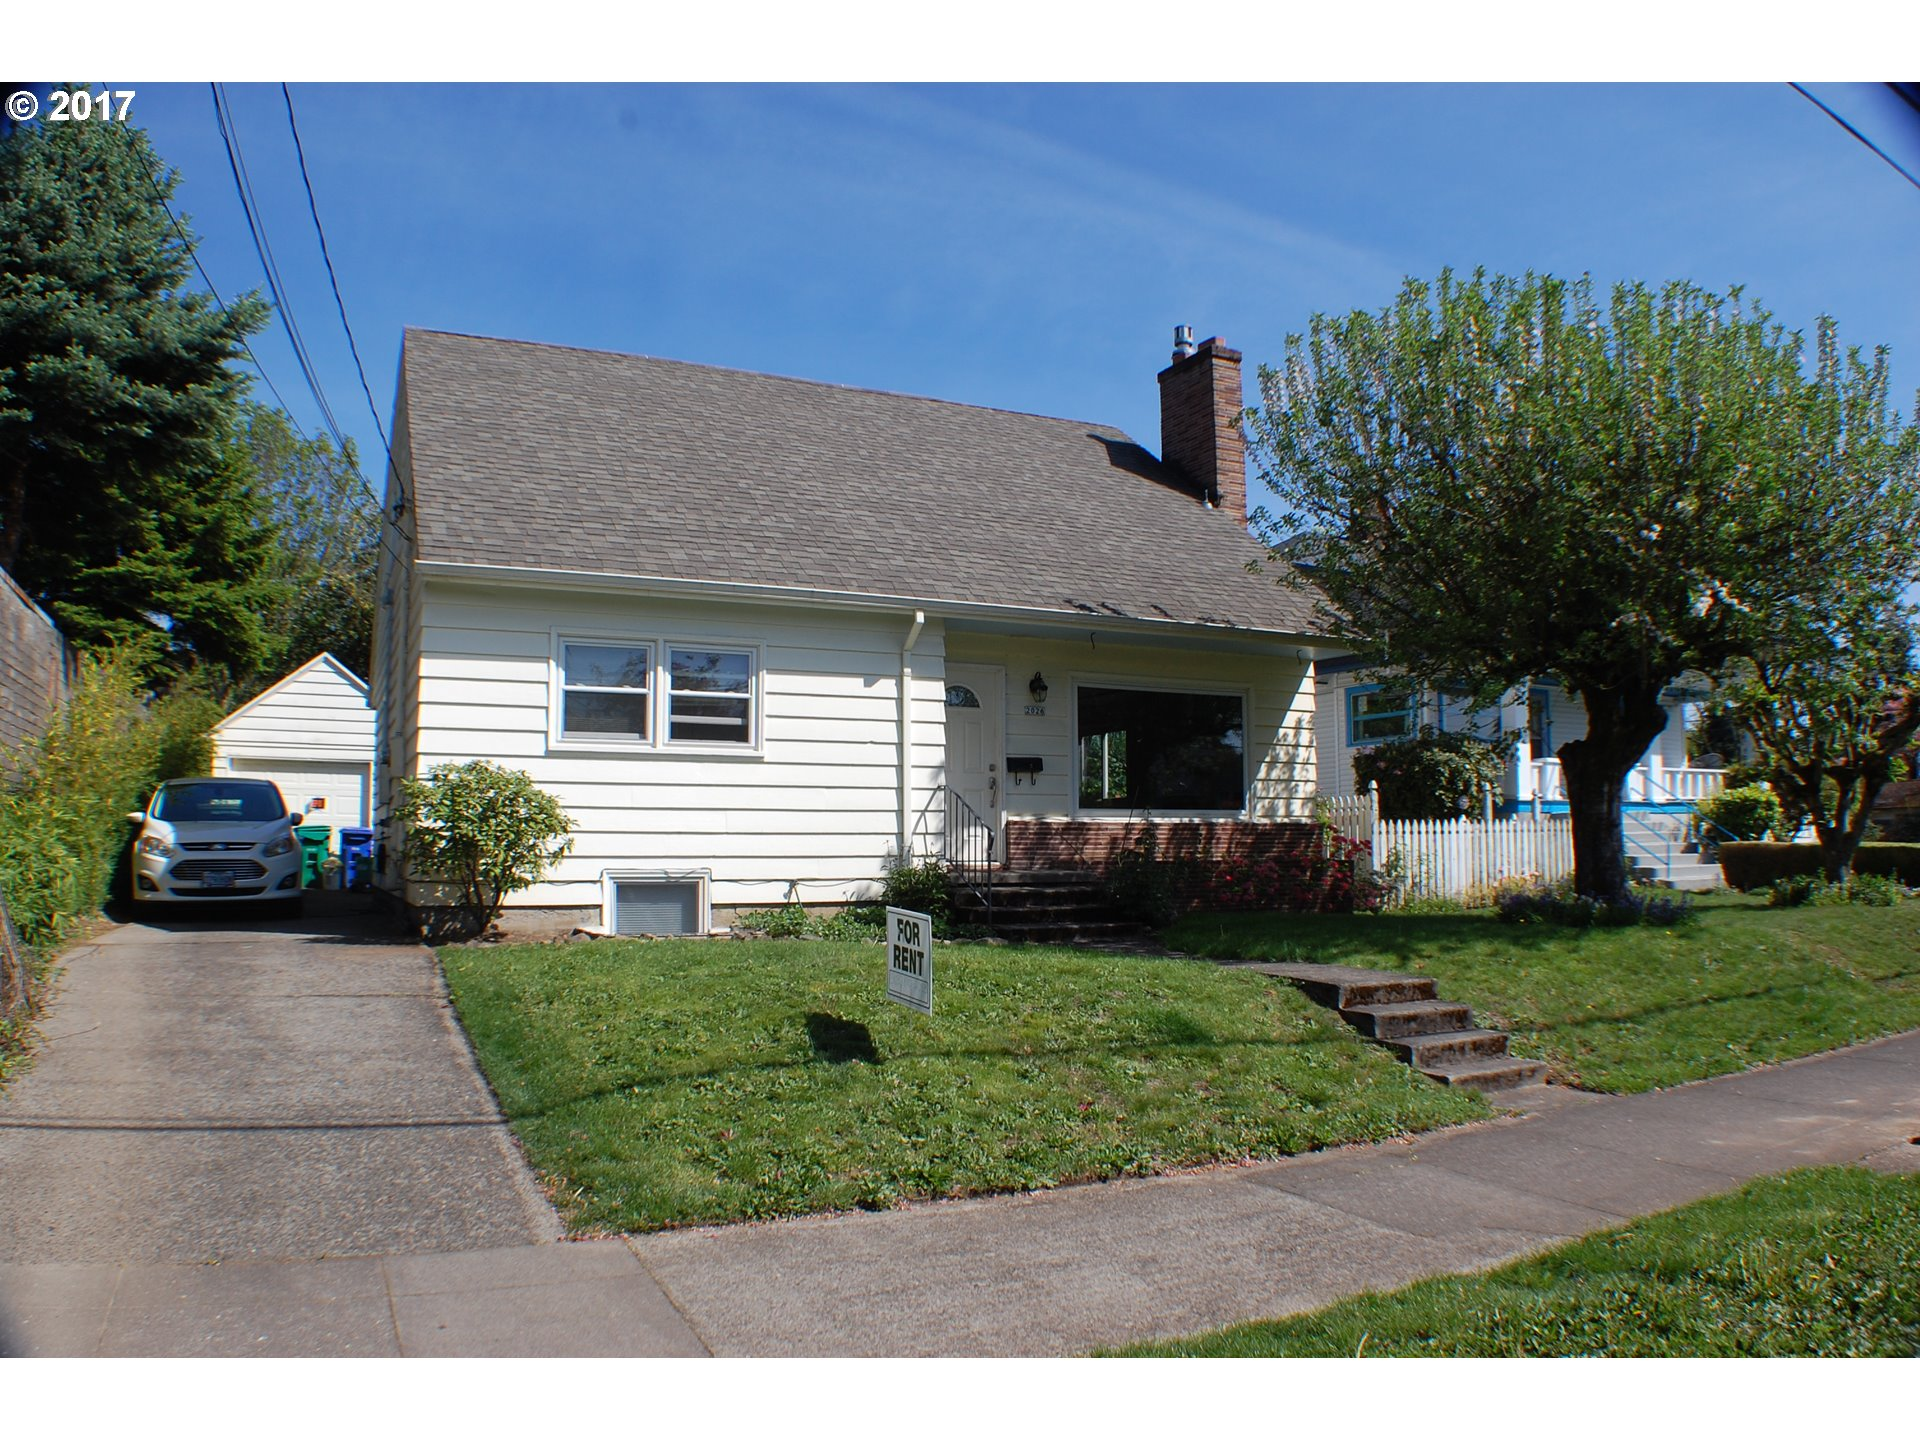 2800 sq. ft 6 bedrooms 3 bathrooms  House ,Portland, OR